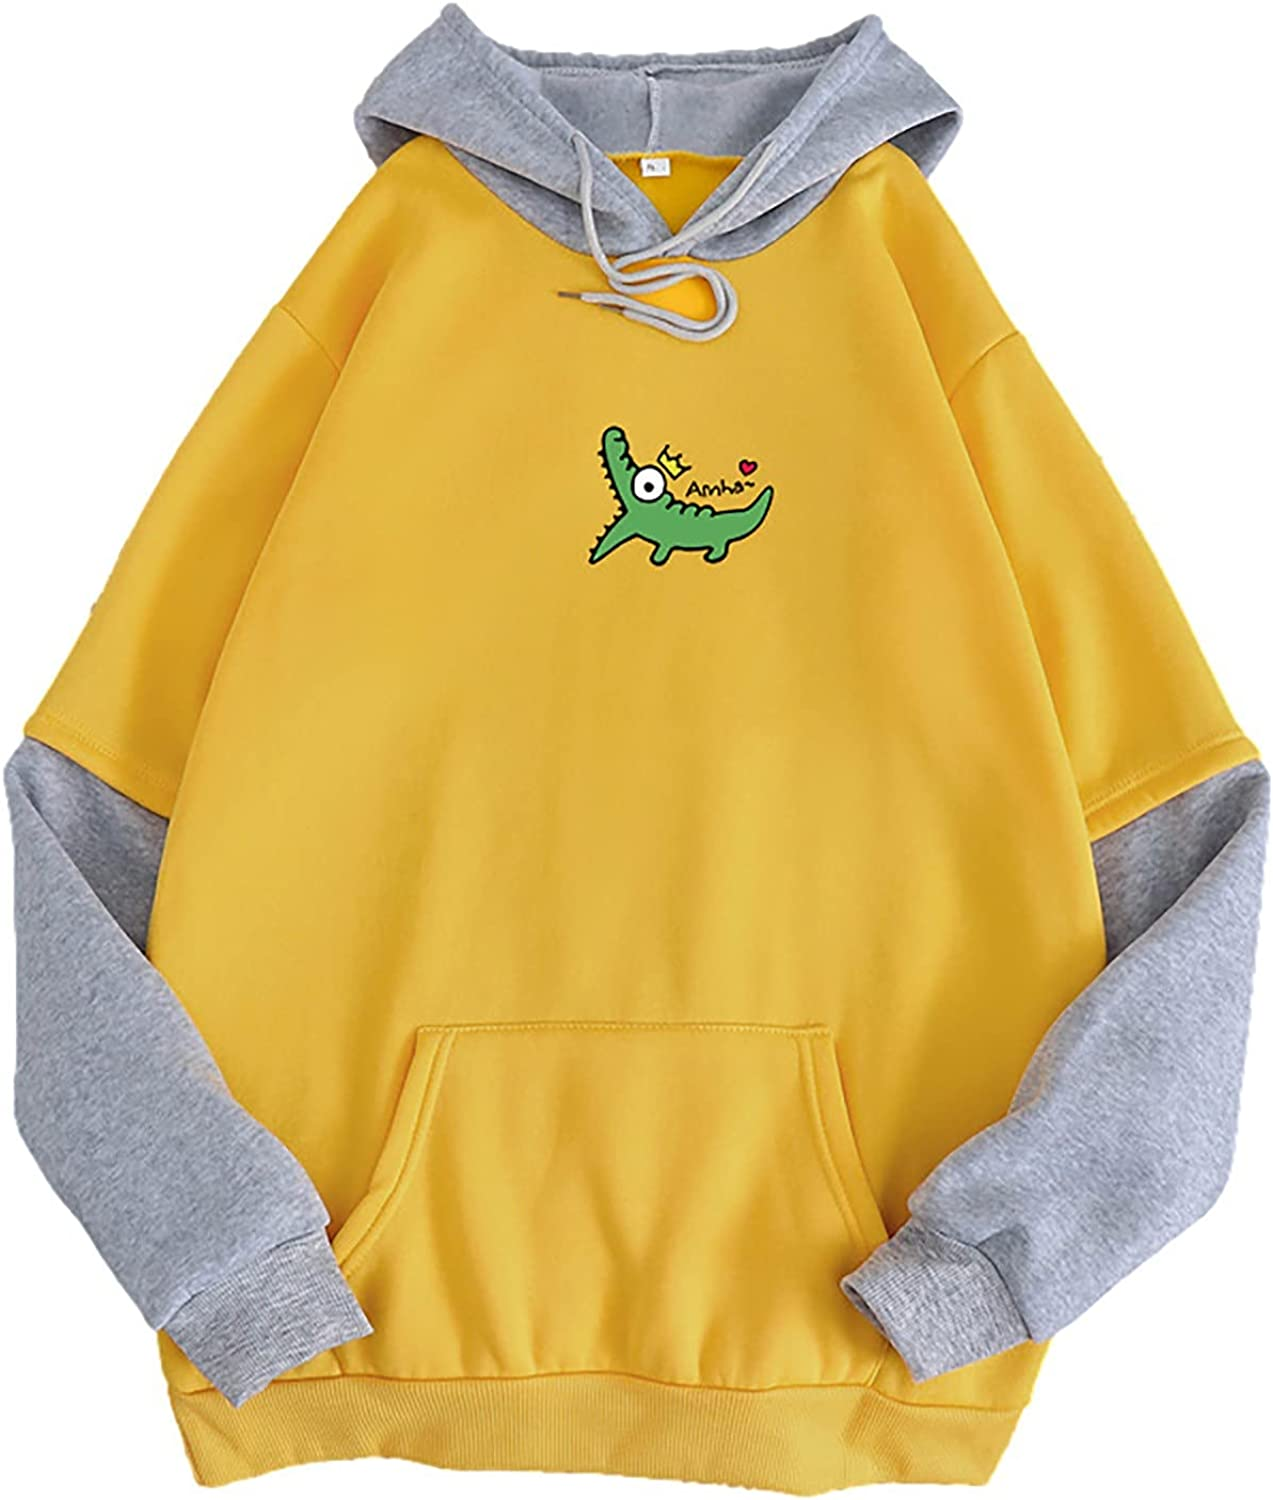 Women Hoodies Tops Splicing Printed Drawstring Great interest Sleeve Pullo Long Direct stock discount